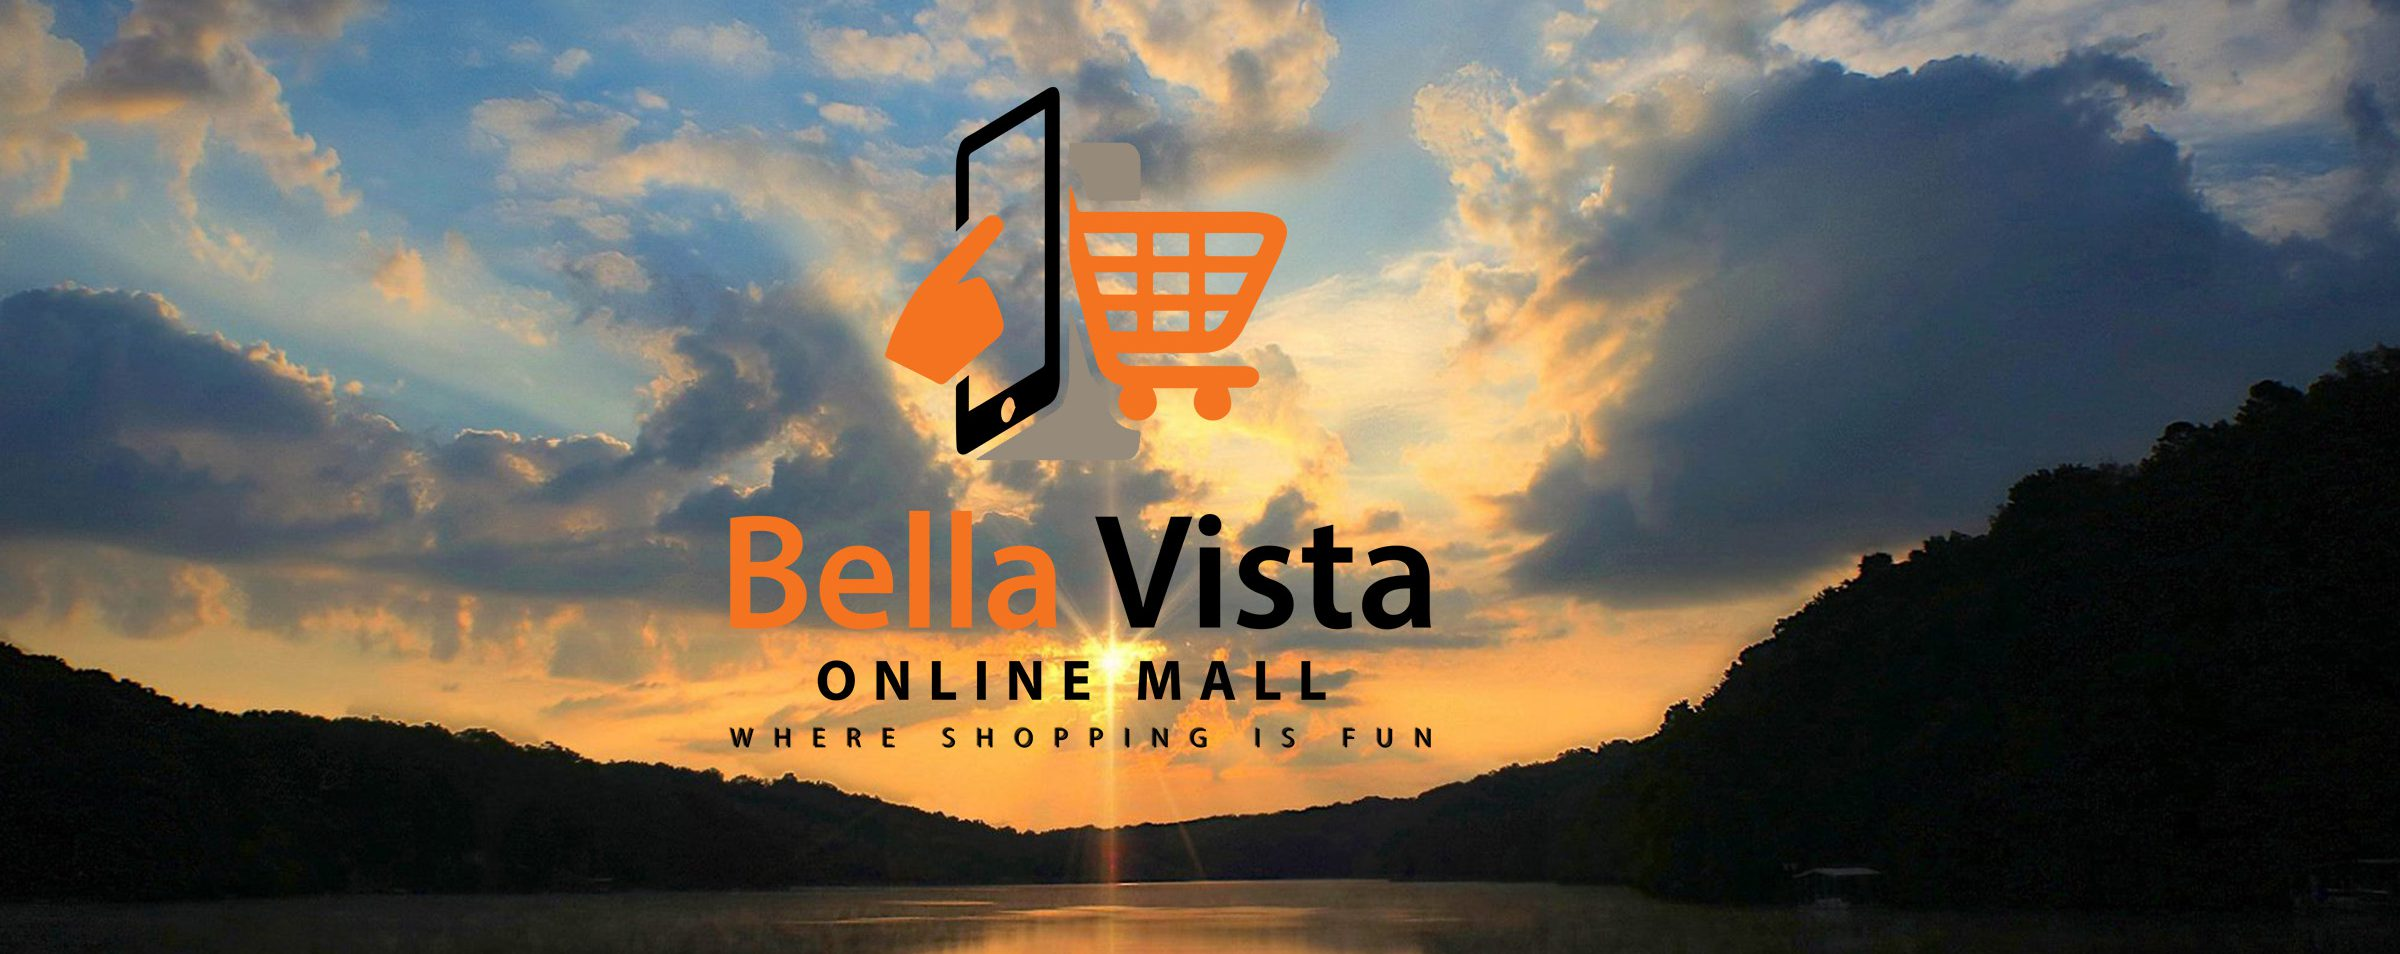 Bella Vista Online Mall